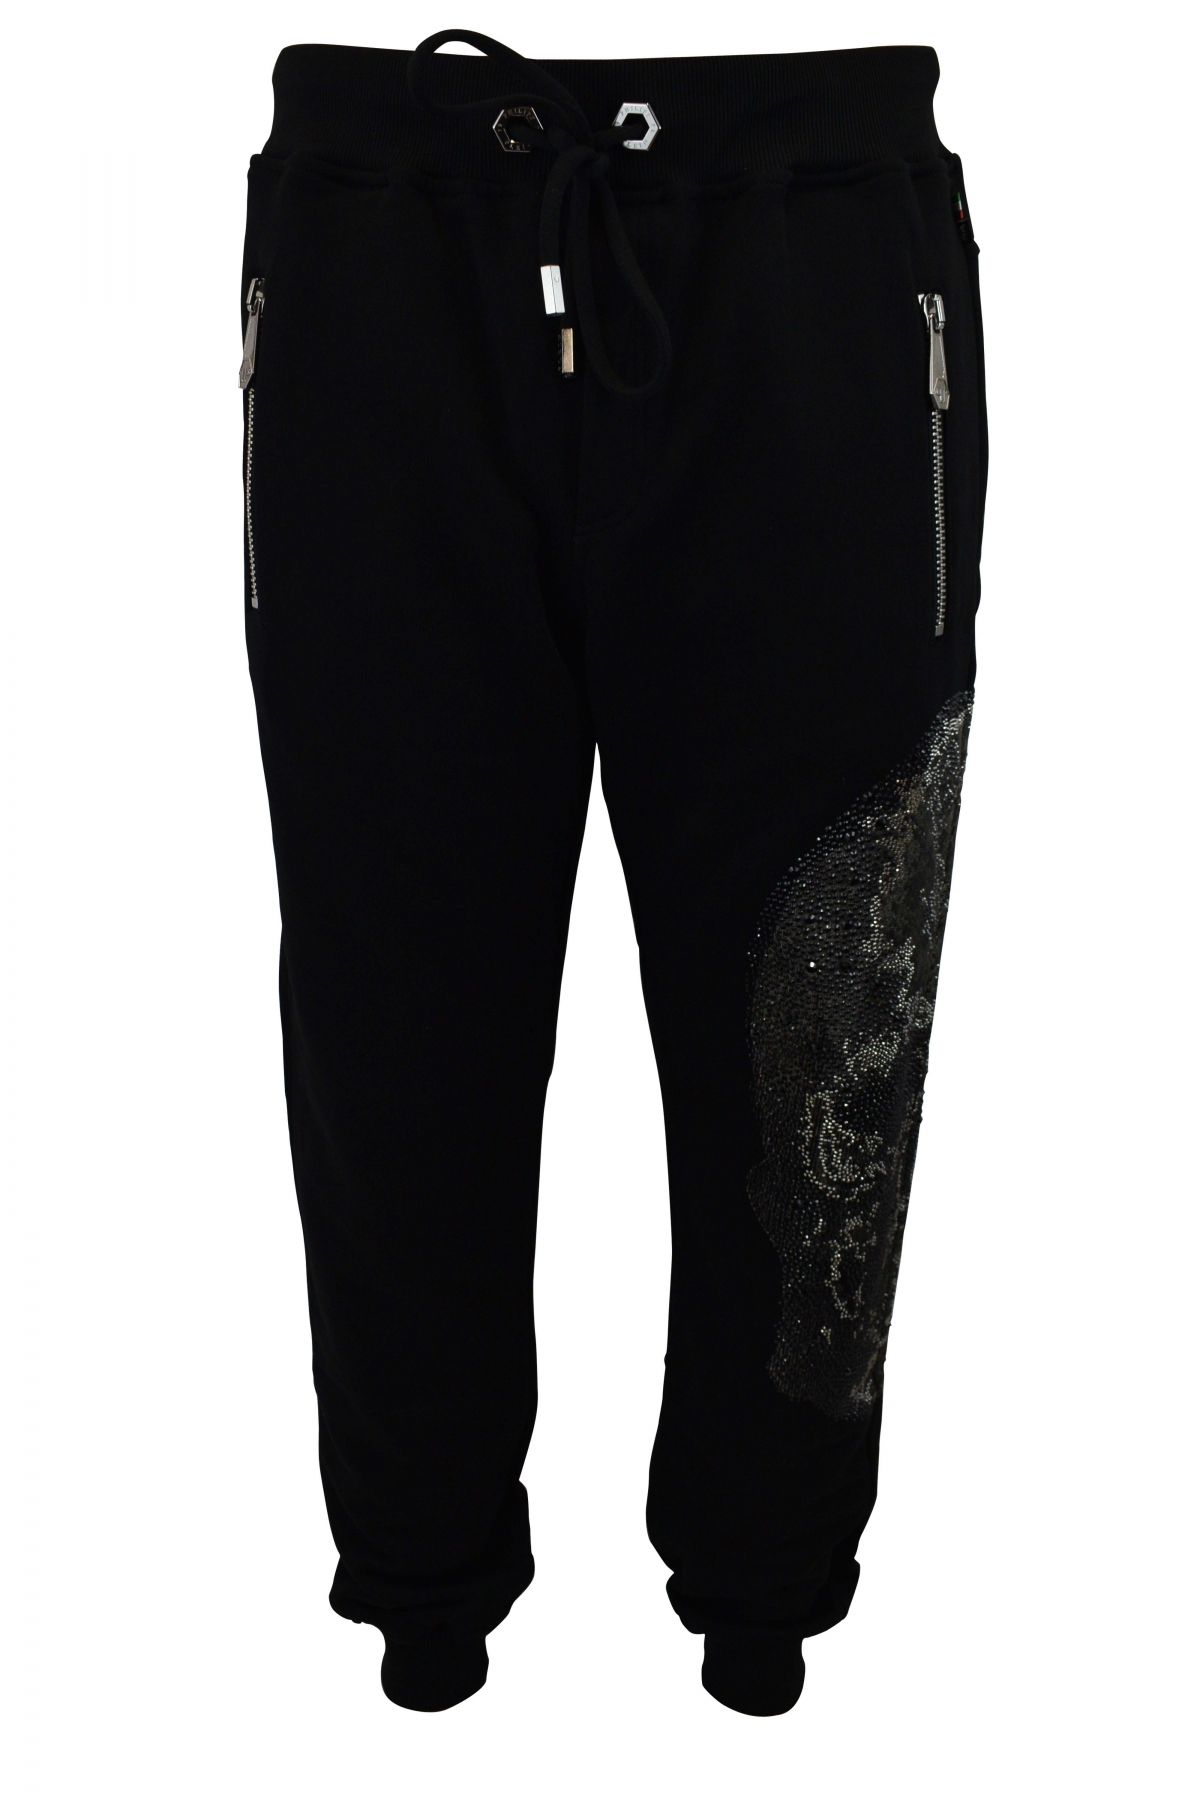 Philipp Plein black joggers with full strass skull python effect on one leg and zipped pockets